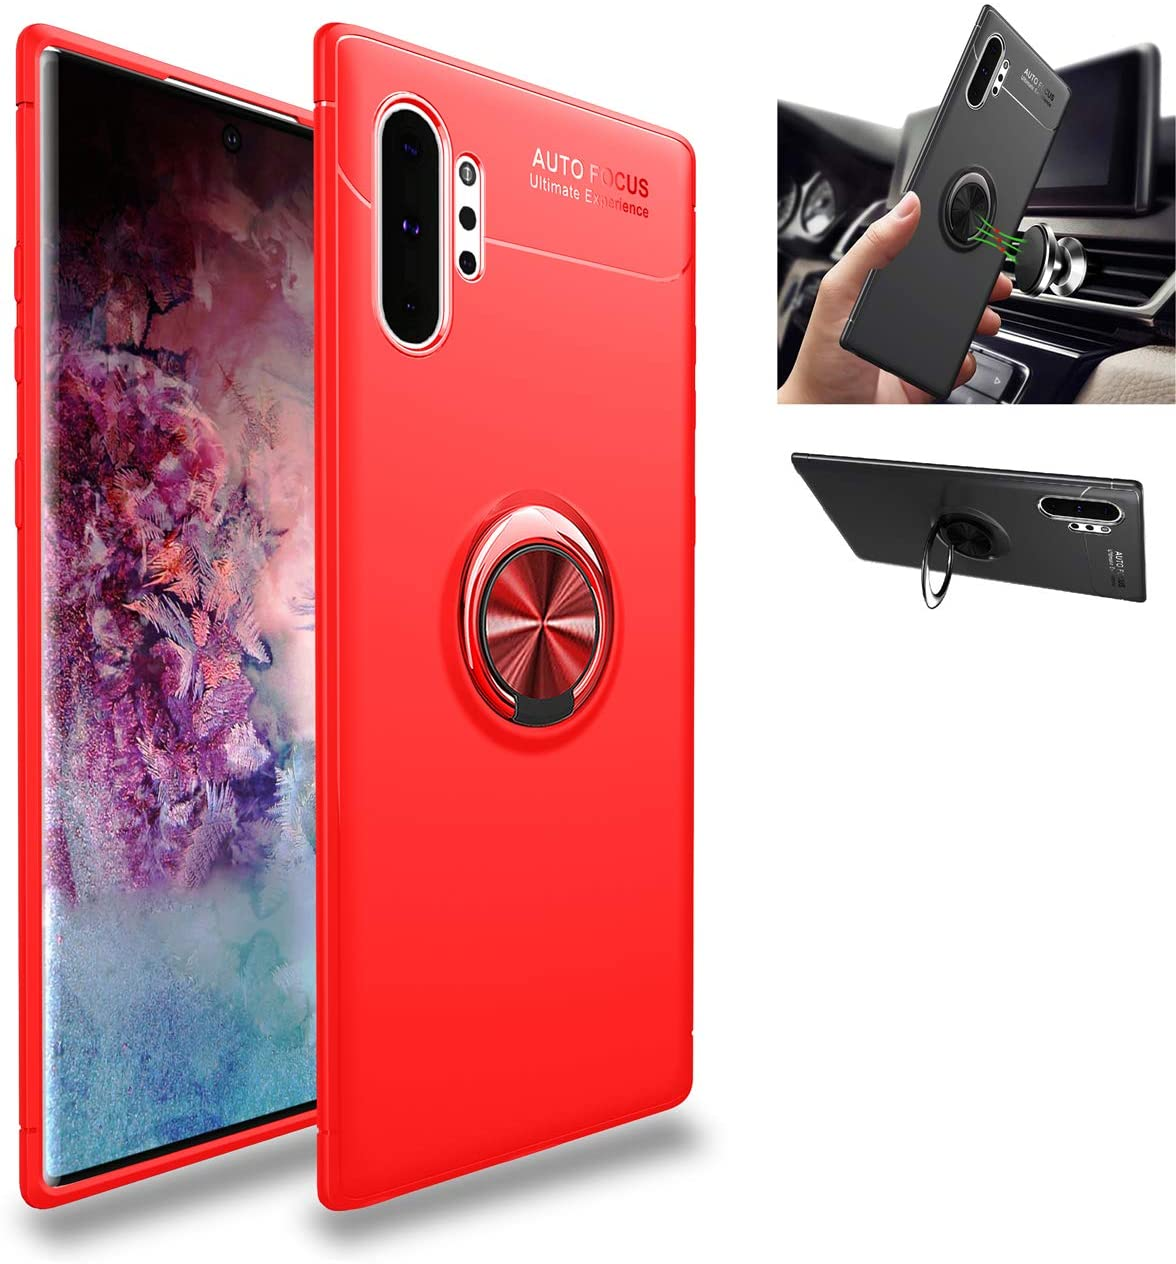 Galaxy Note 10 Pro case,Silicone Shockproof Cover,zinc Alloy 360° Rotating Kickstand car Holder Ultra Thin Protection Scrub Soft case,for Samsung Galaxy Note 10 Pro (Red/Red)